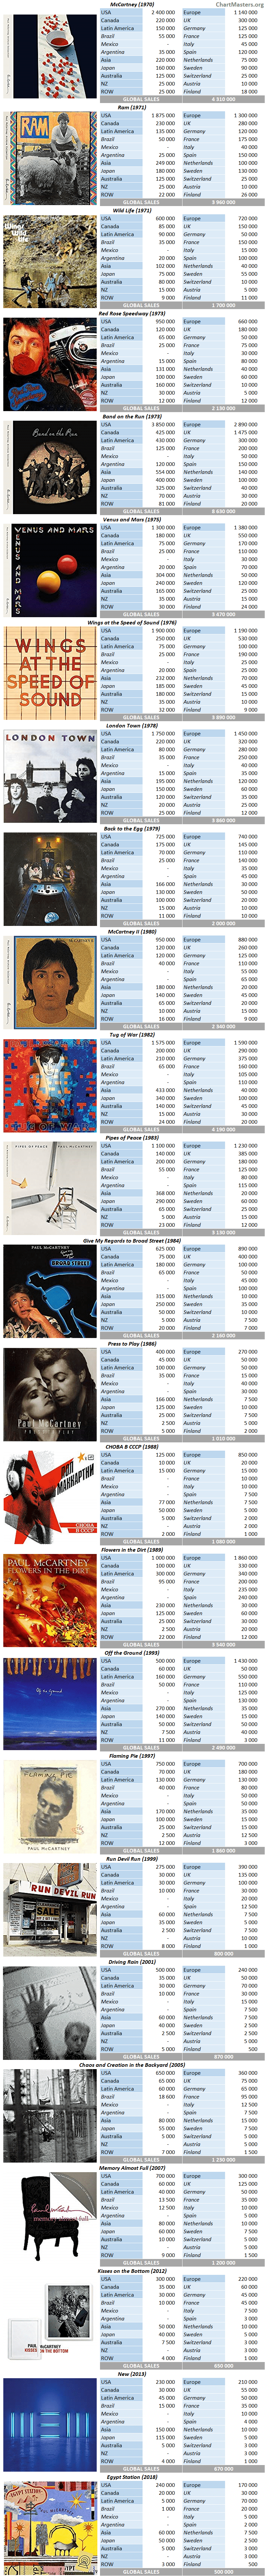 CSPC Paul McCartney Album Sales by Market